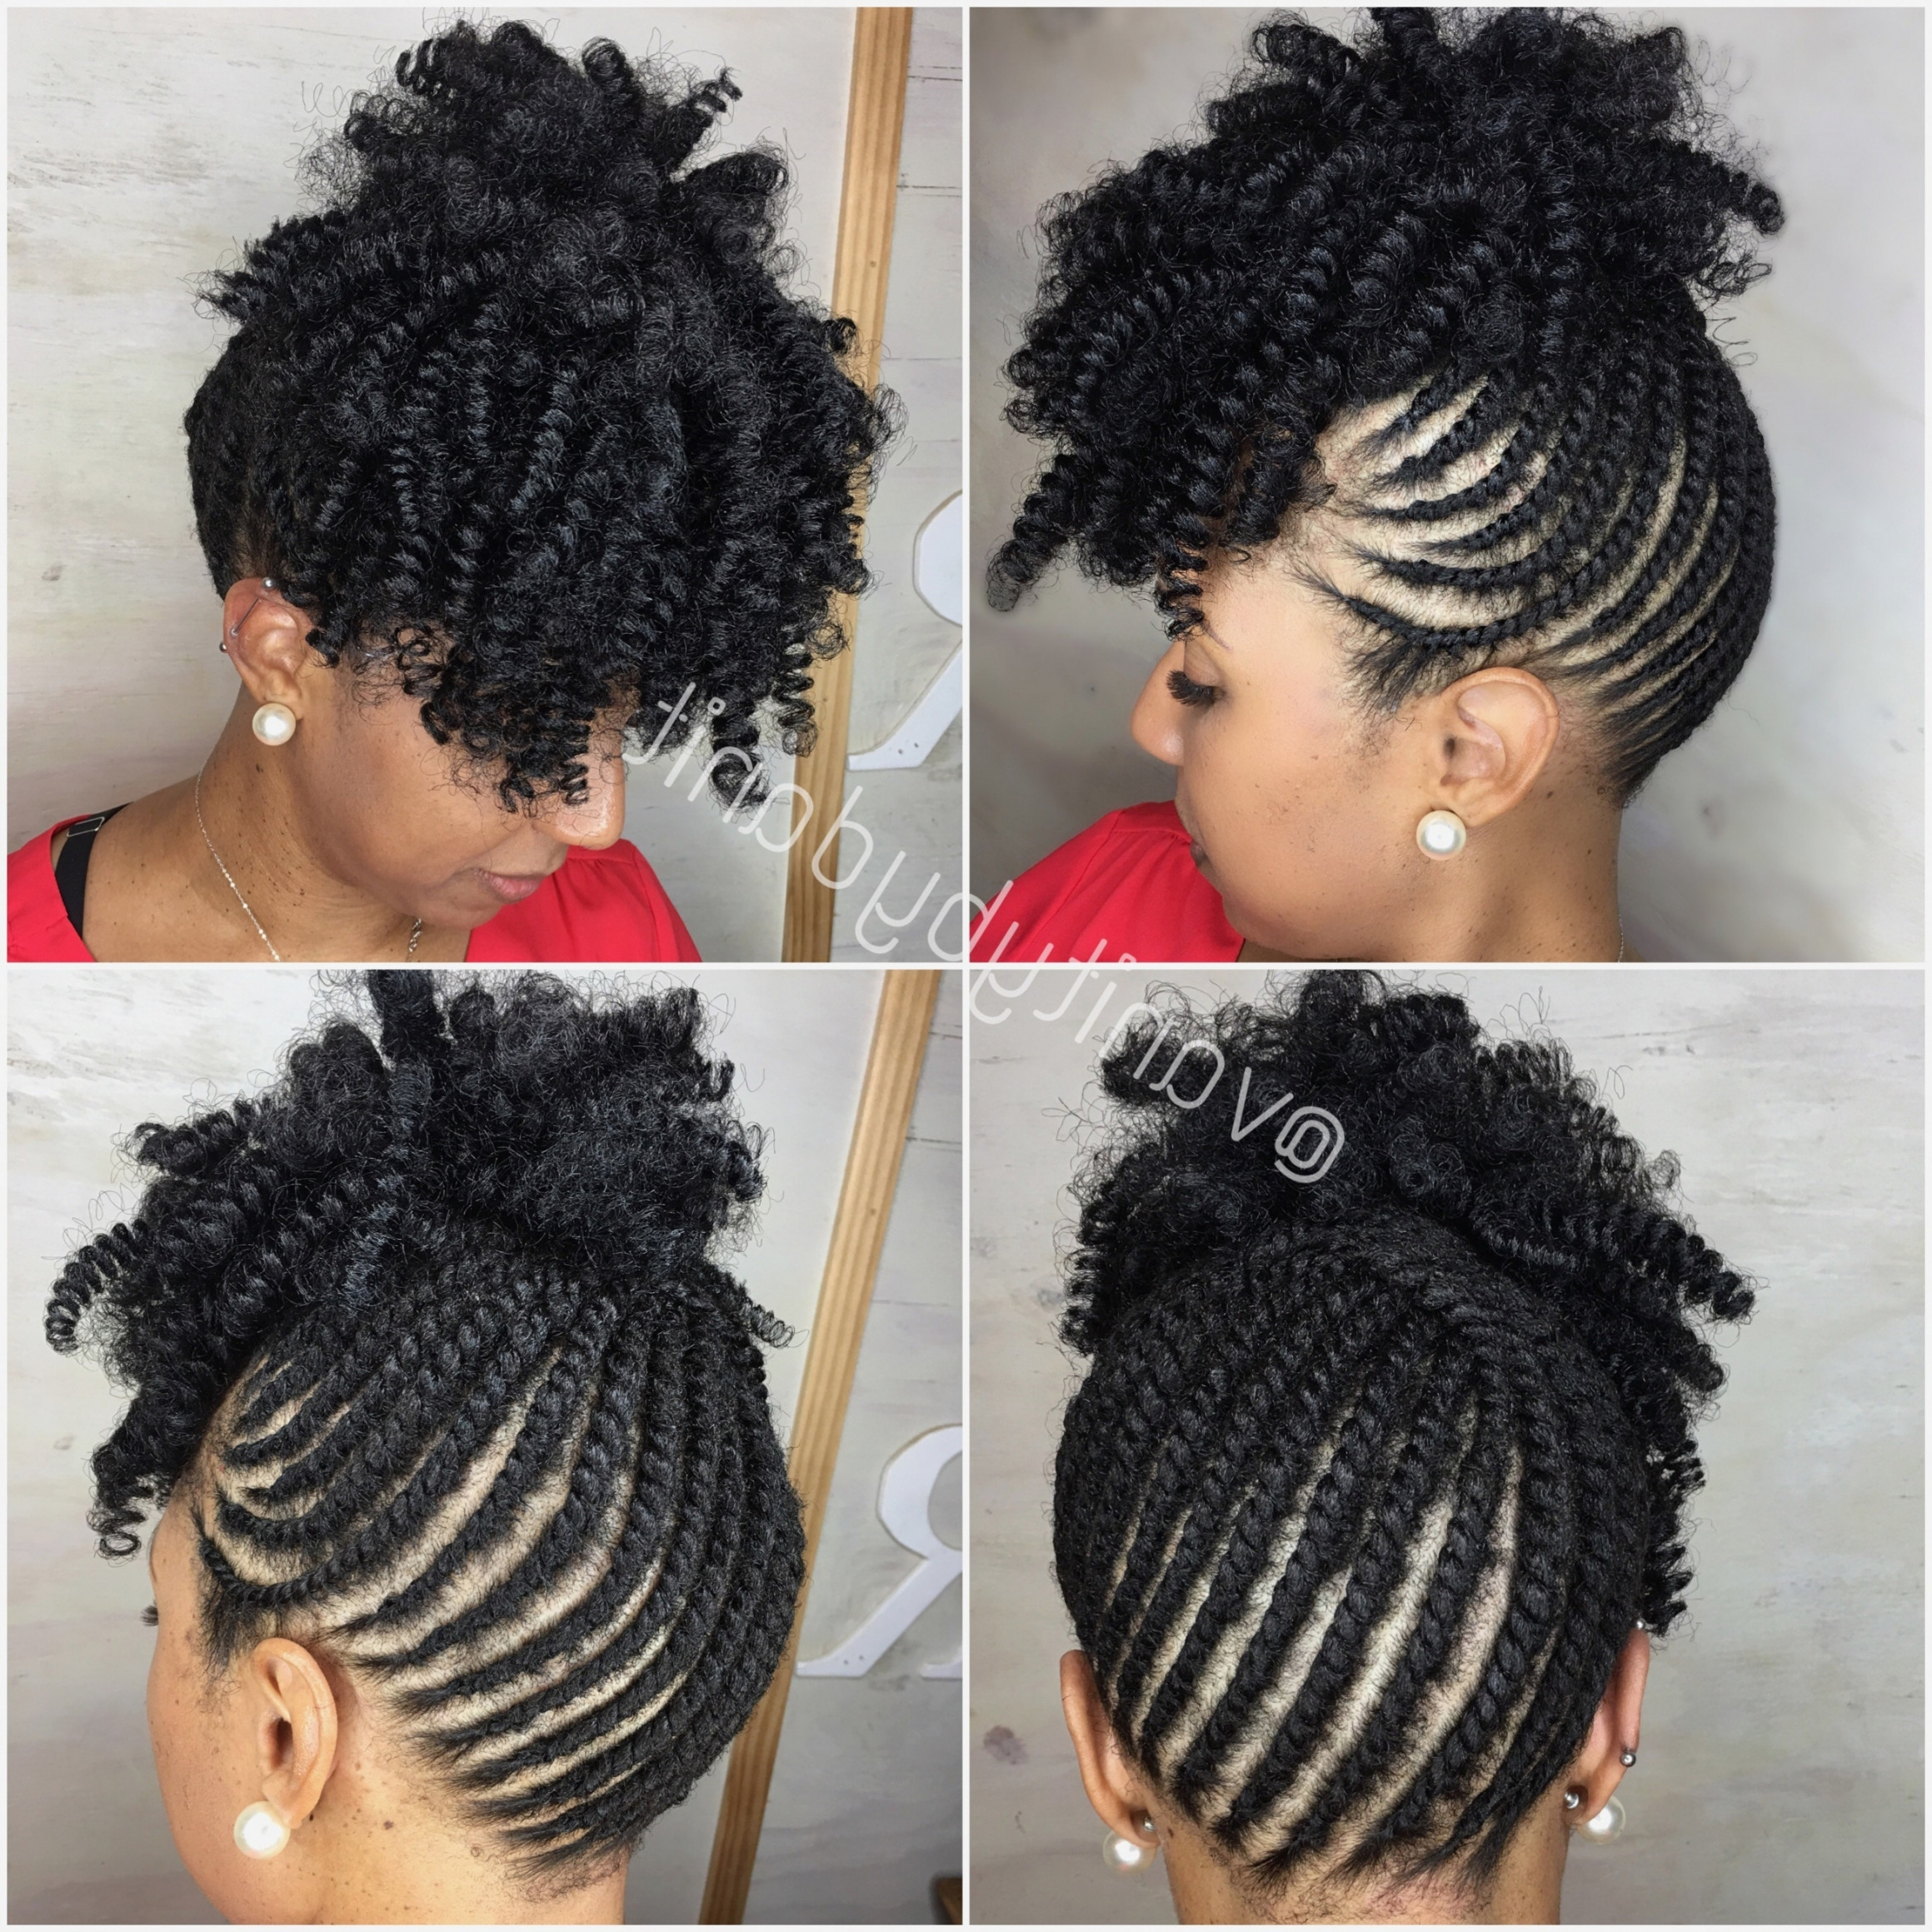 Braid Hairstyles : Top Braided Mohawk Hairstyles Natural Hair (View 4 of 15)